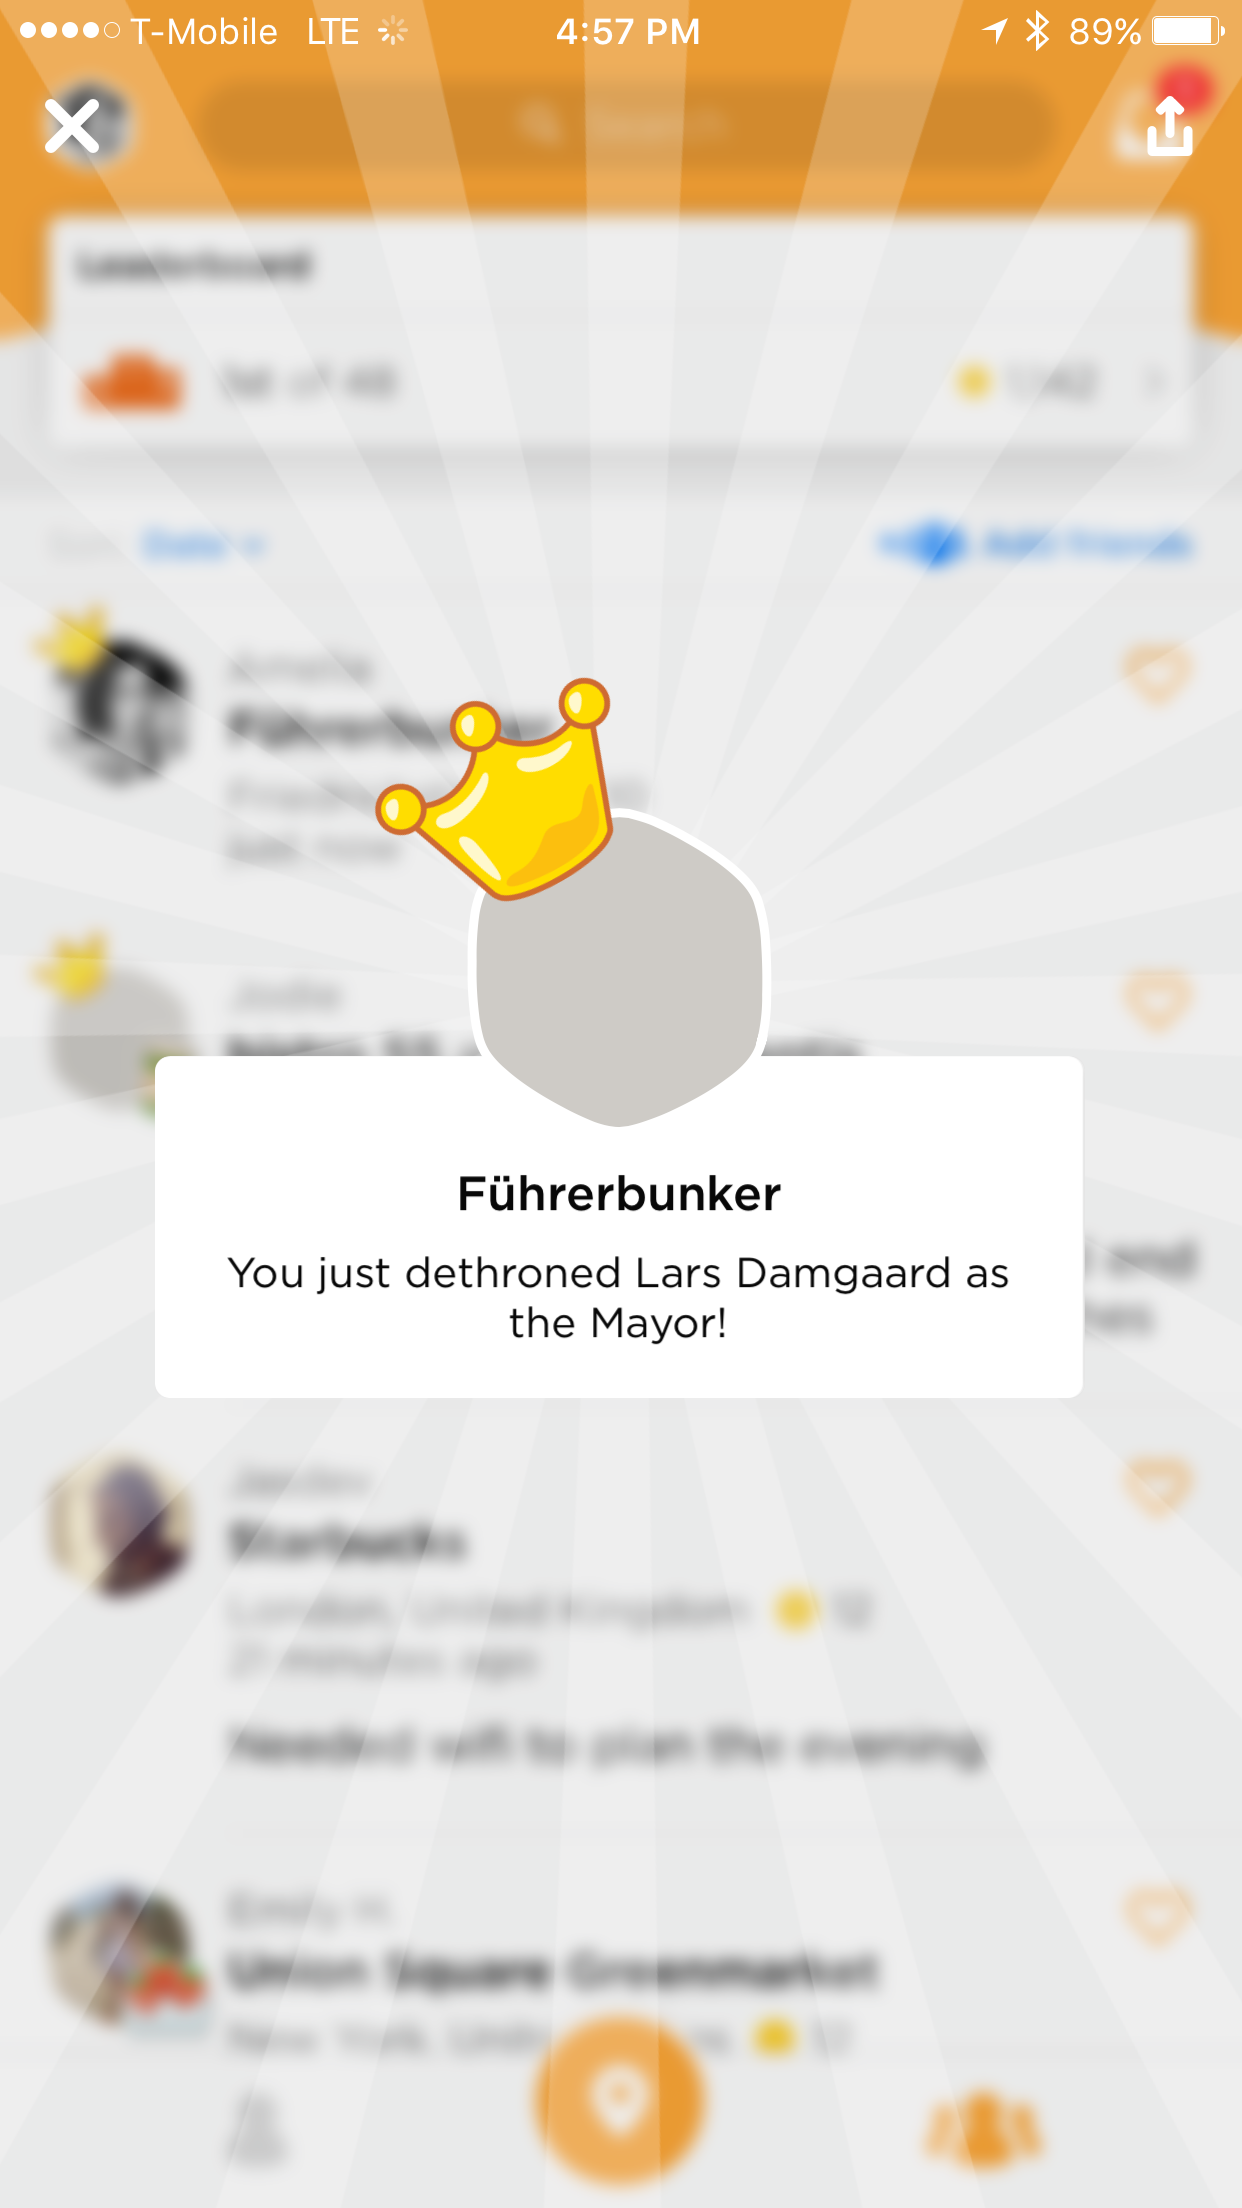 I don't know how this happened, but apparently two checkins at the Führerbunker is enough to make you mayor. I guess no one wants to check in there. ¯\_(ツ)_/¯